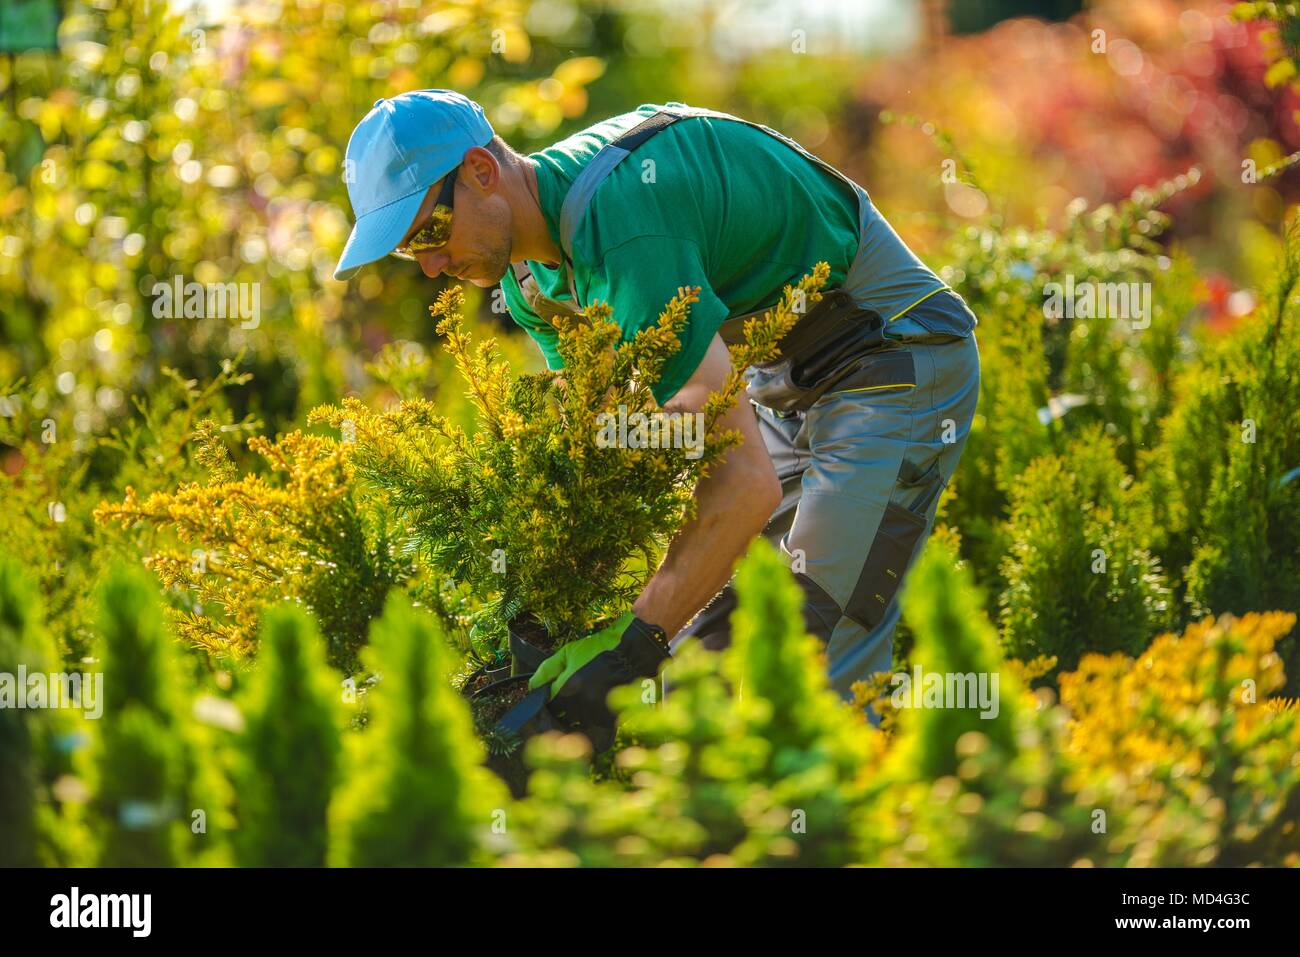 Caucasian Gardener Looking For a New Plants For Garden Project. Landscaping Theme. - Stock Image